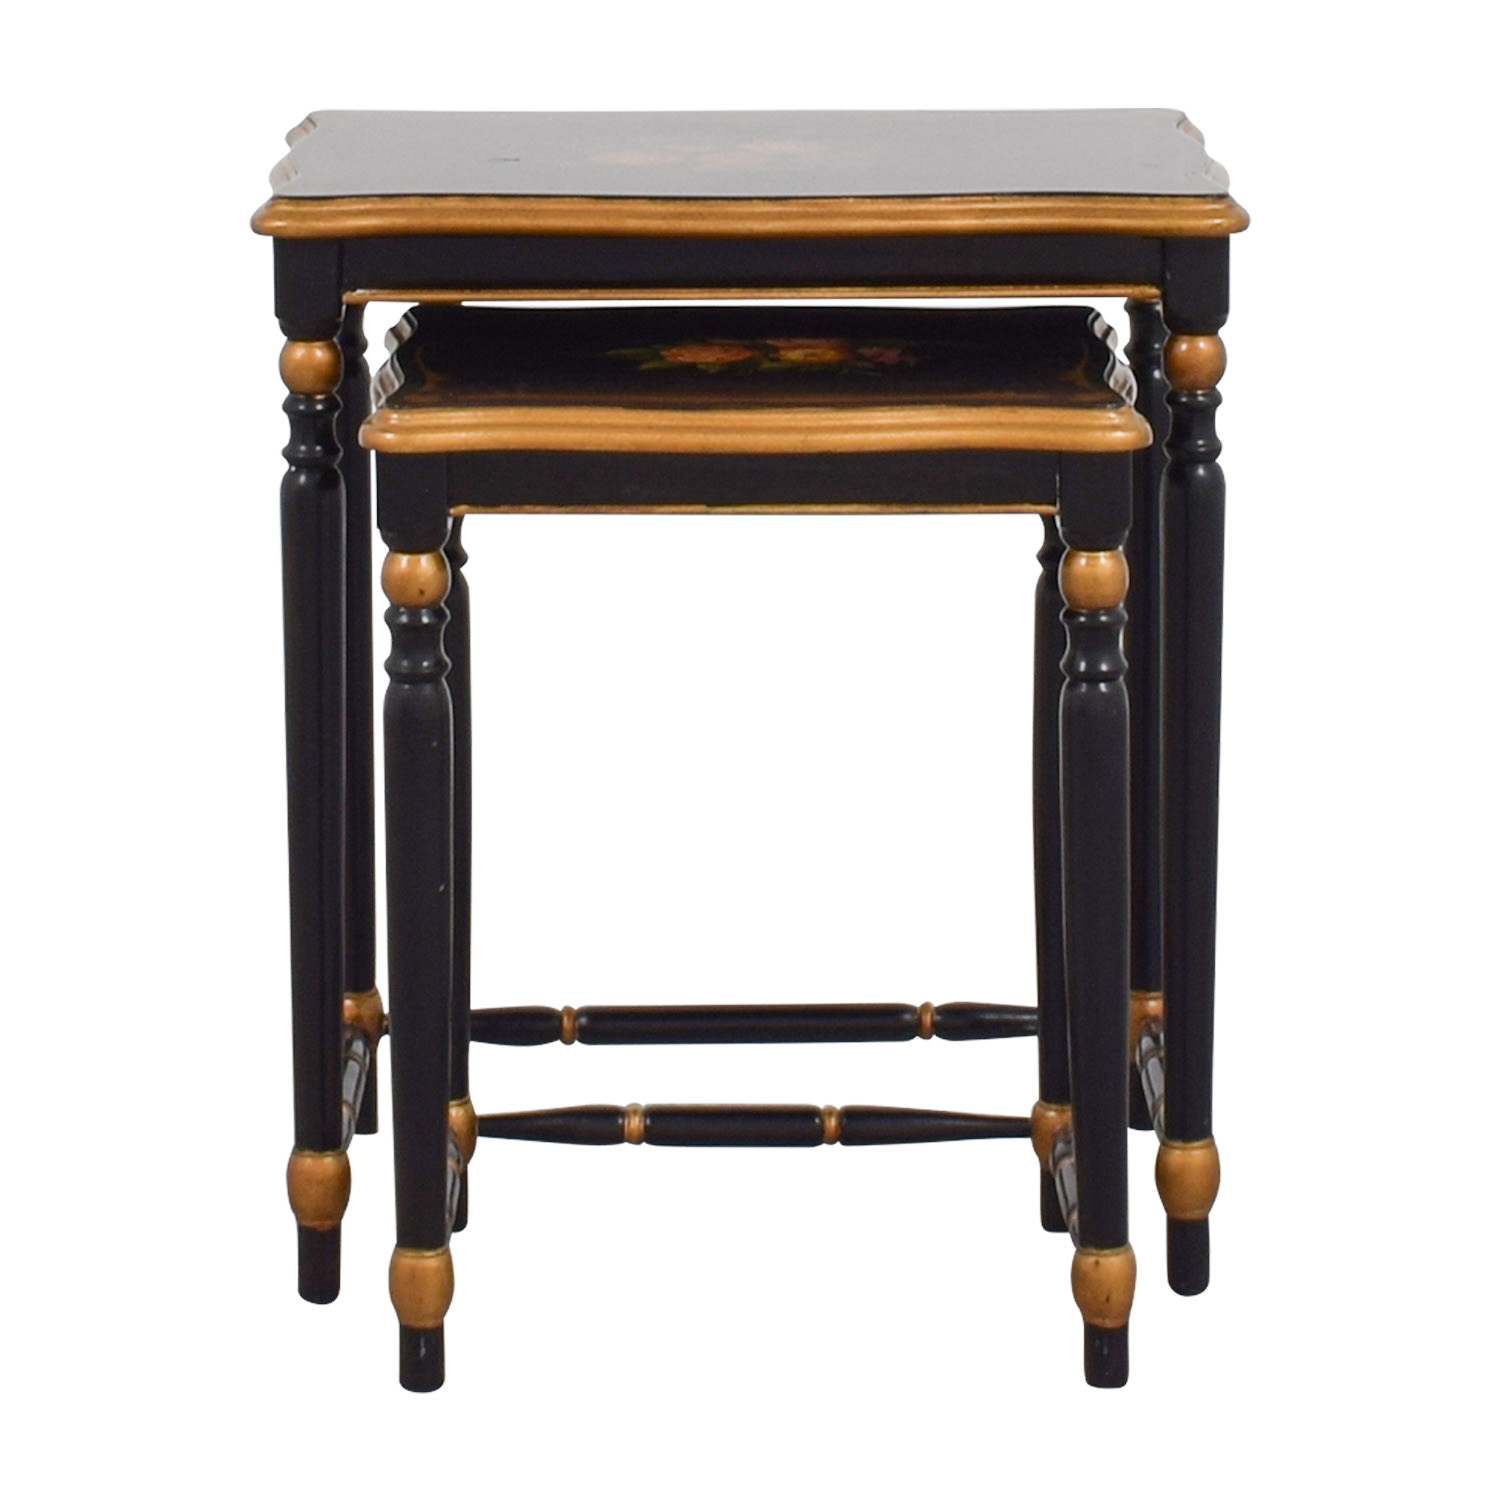 Oriental Accent Oriental Accent Nesting Tables with Painted Flower Design